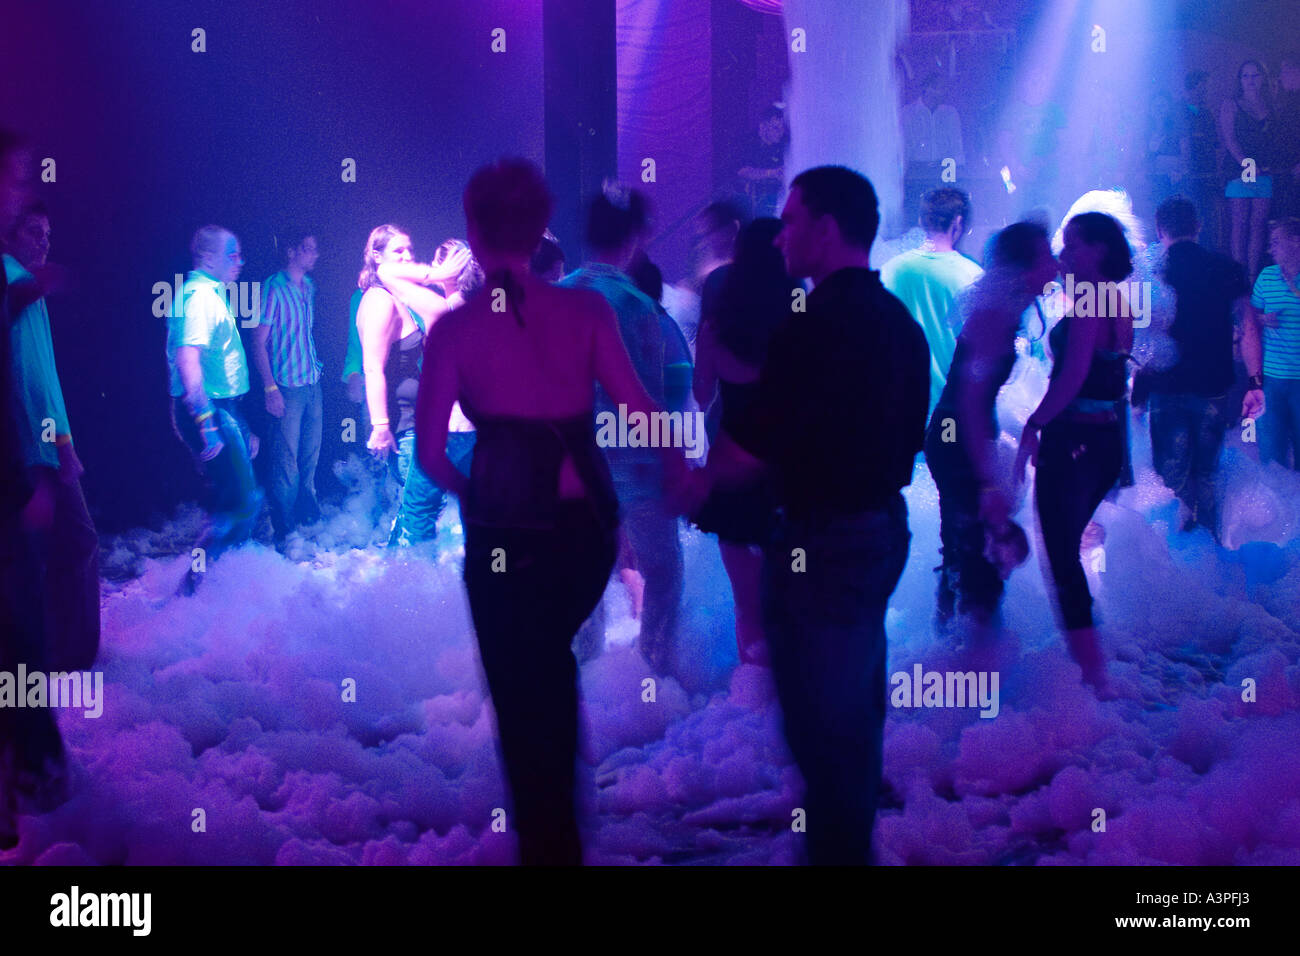 Group of people dancing in nightclub. Foam Party. Exit Club, Greenpoint, Brooklyn, New York. USA - Stock Image